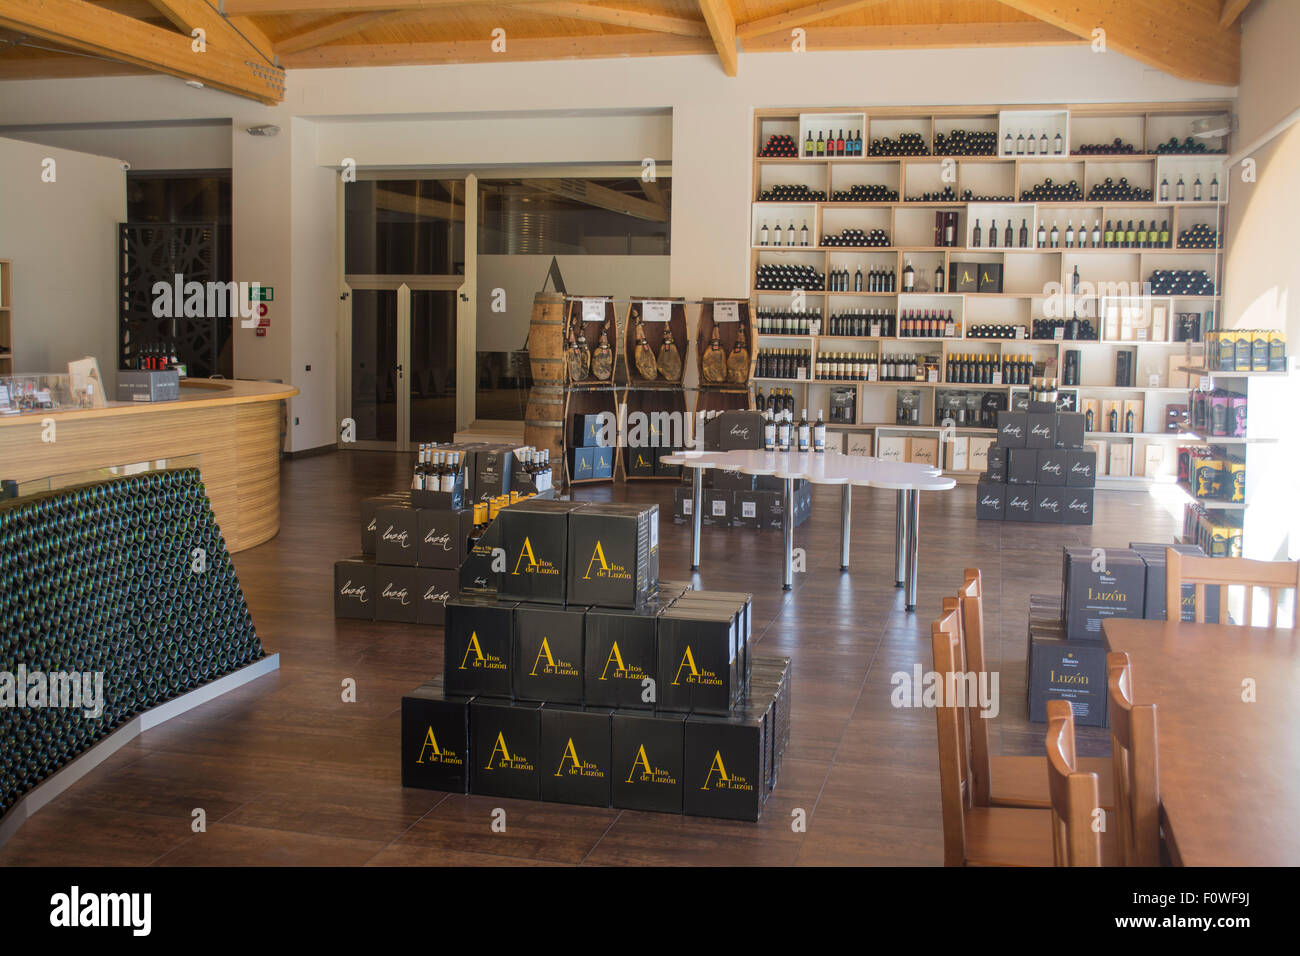 Wine shop at Luzon Bodega, Jumilla, Province of Murcia, Spain - Stock Image